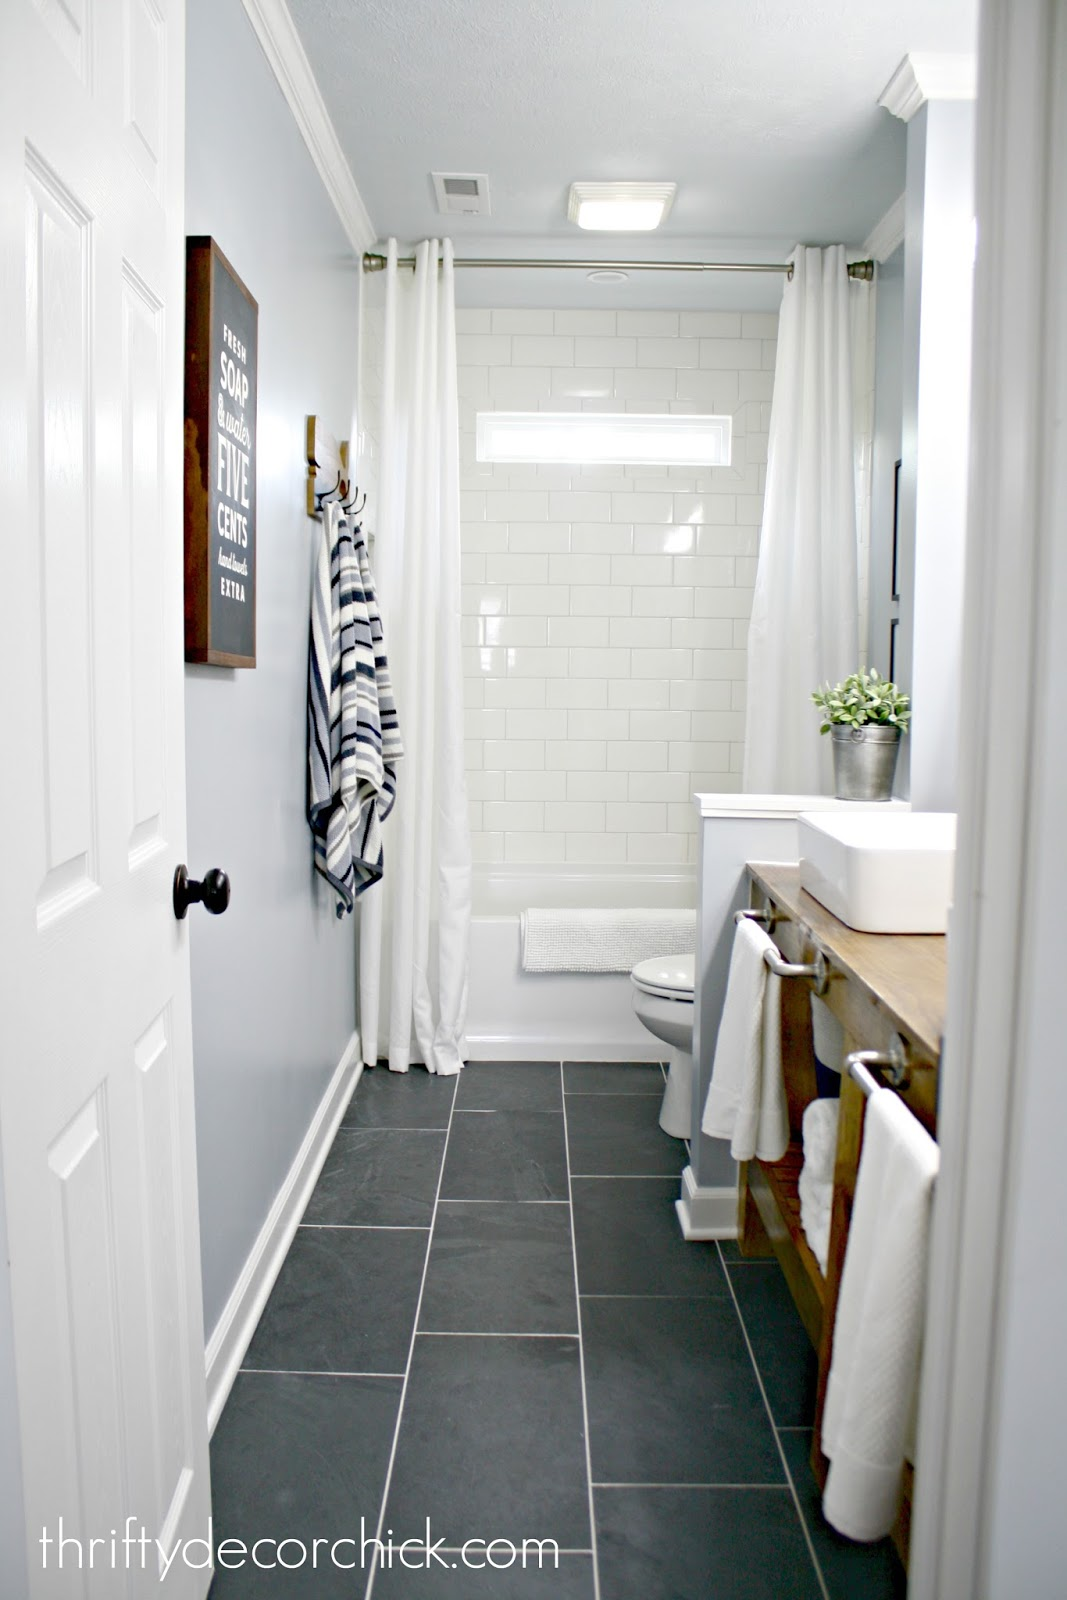 Bathroom reveal after knocking out a wall